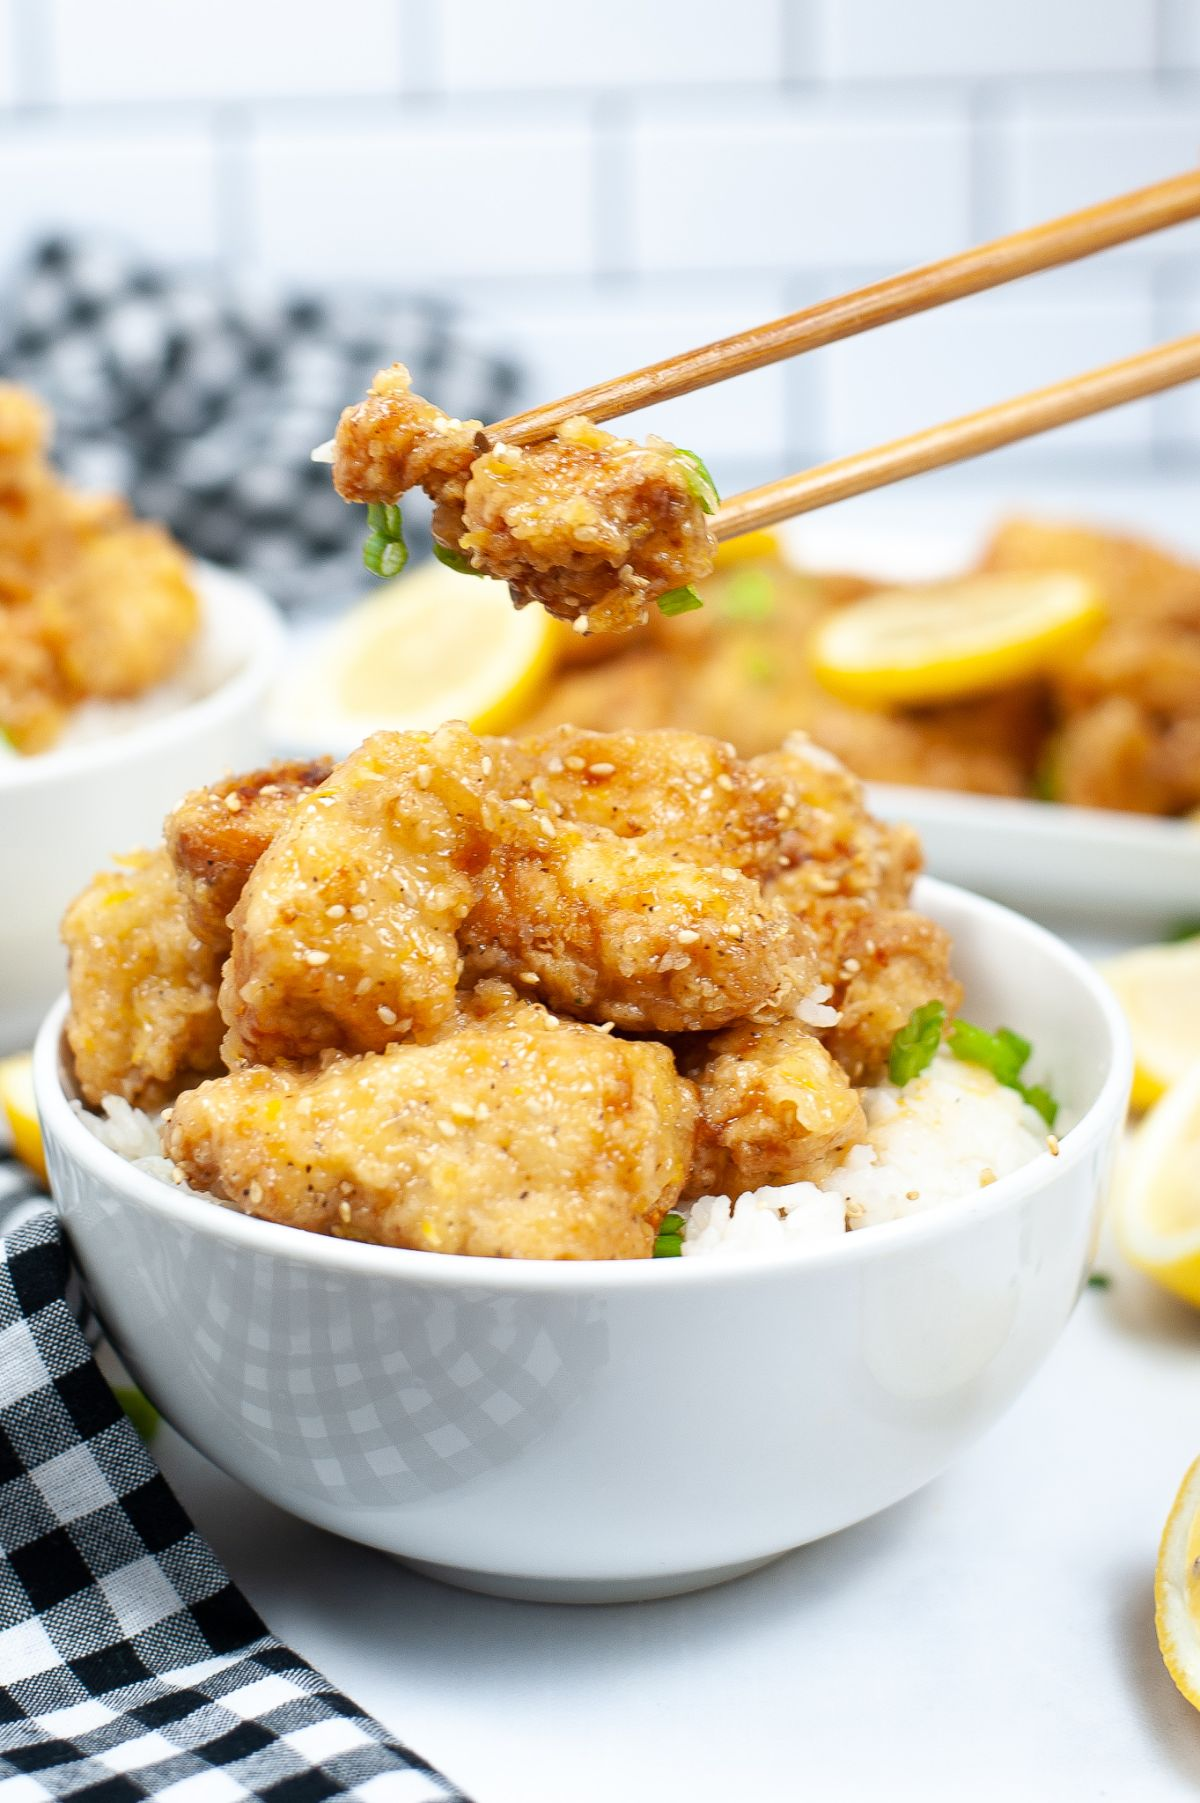 chopsticks holding a piece of chicken above a bowl of lemon chicken and rice